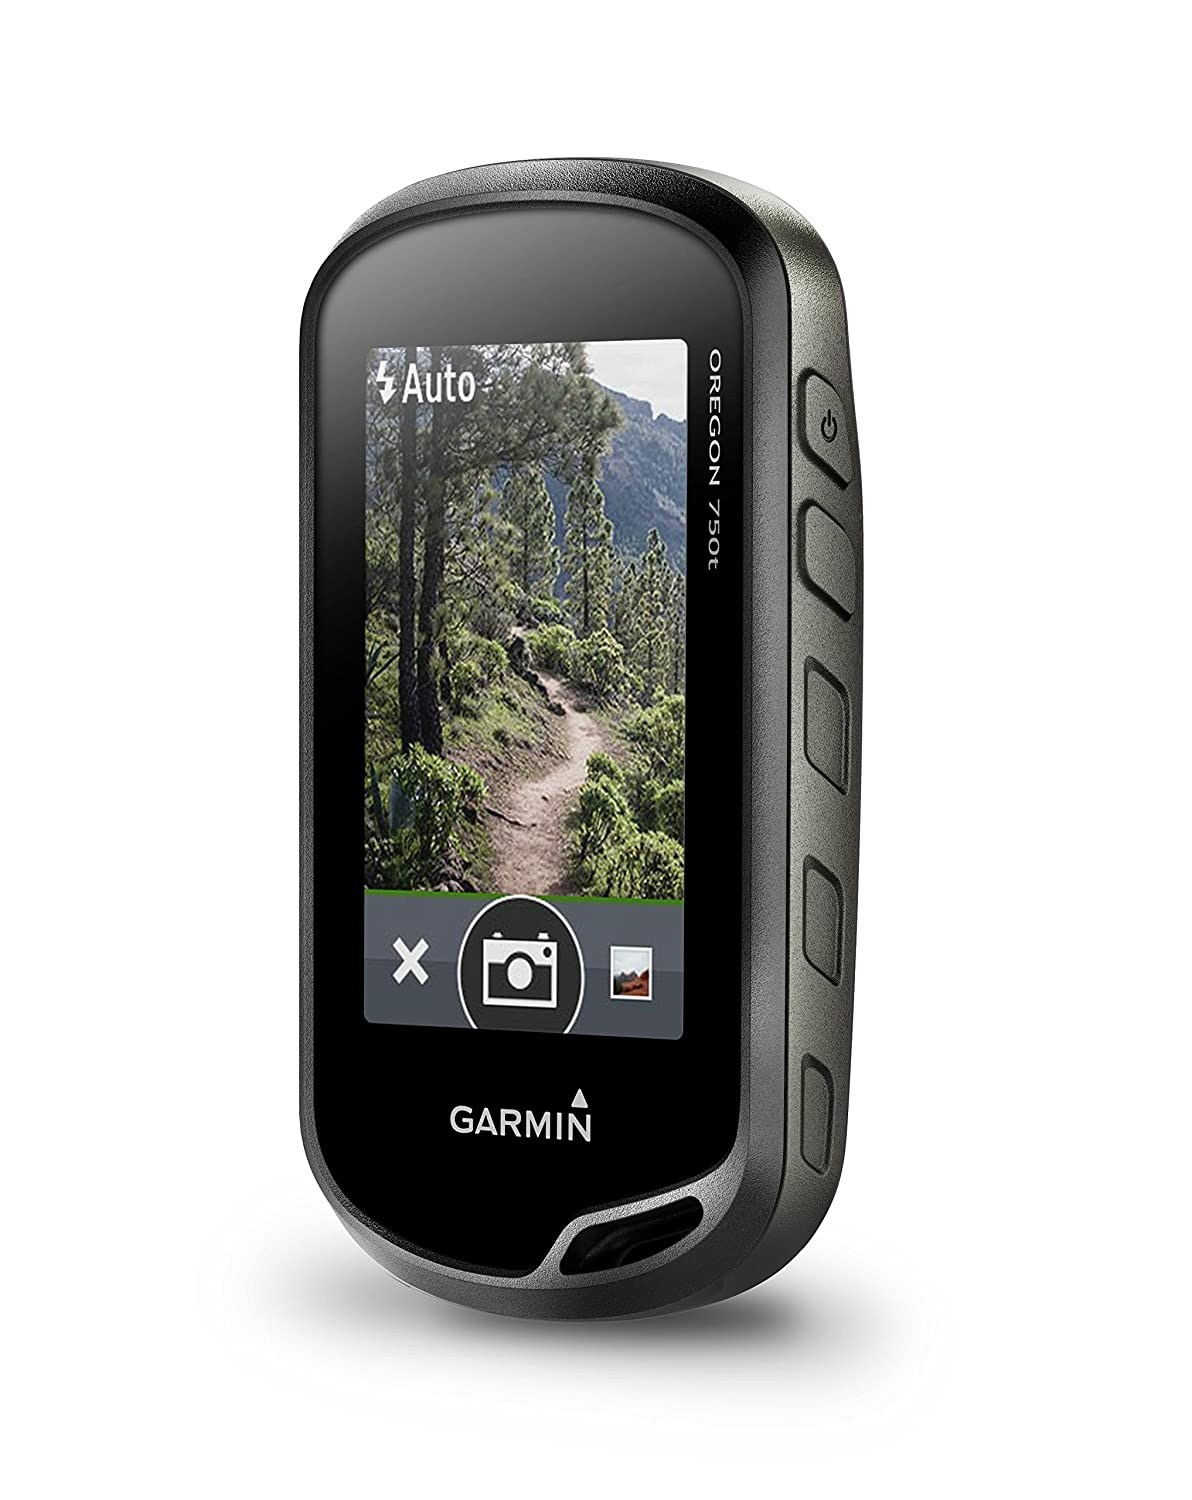 Grey Garmin Oregon 750 Handheld GPS with Built-In Wi-Fi and 8 MP Camera Black